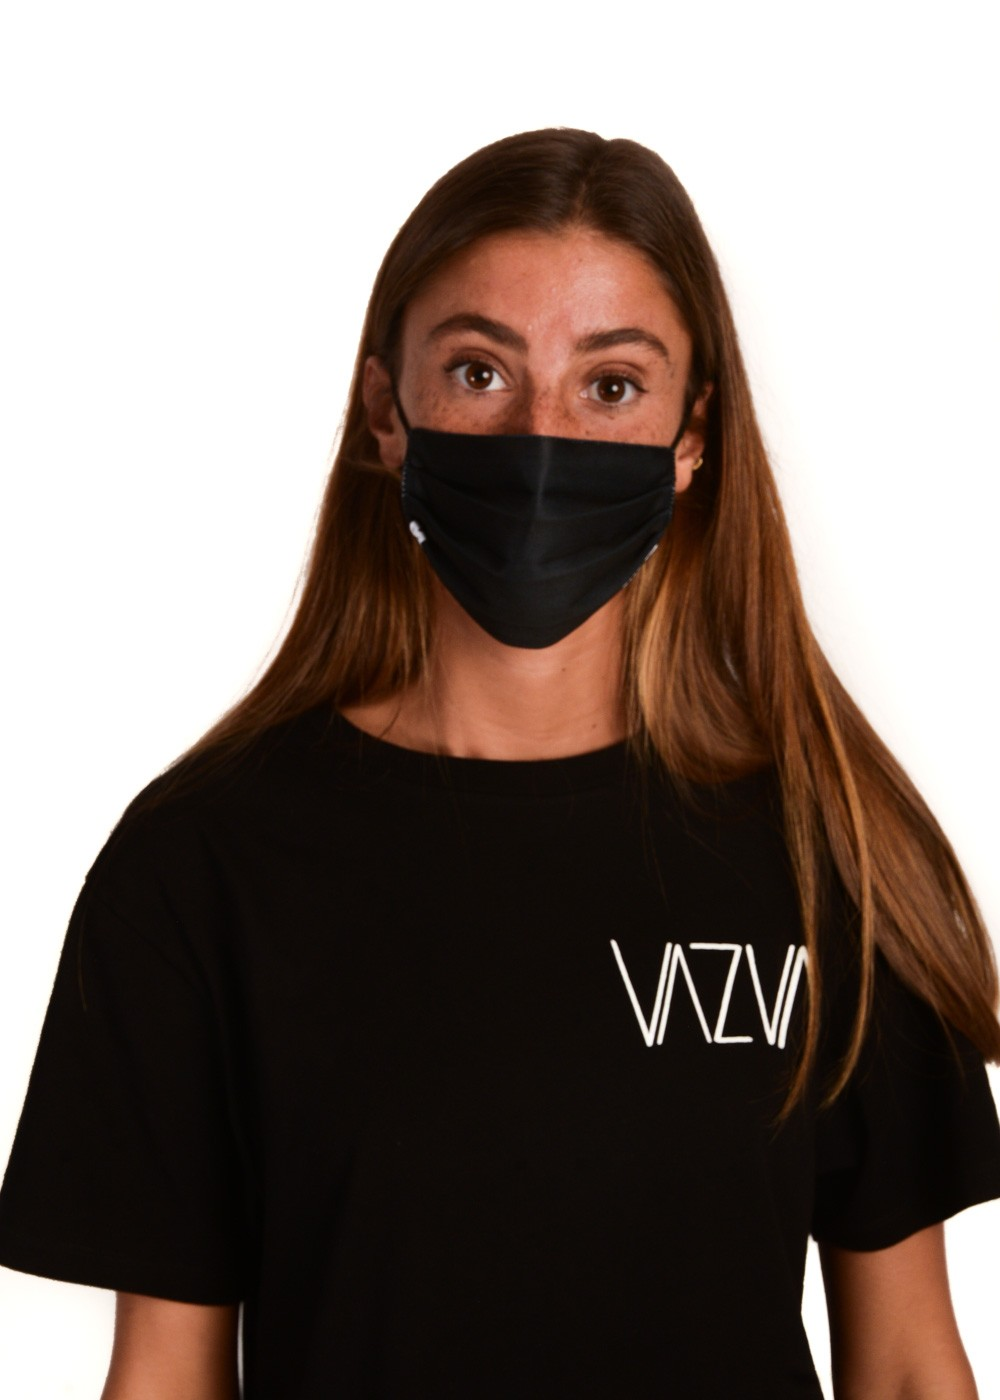 LOGO YOUTH MASK